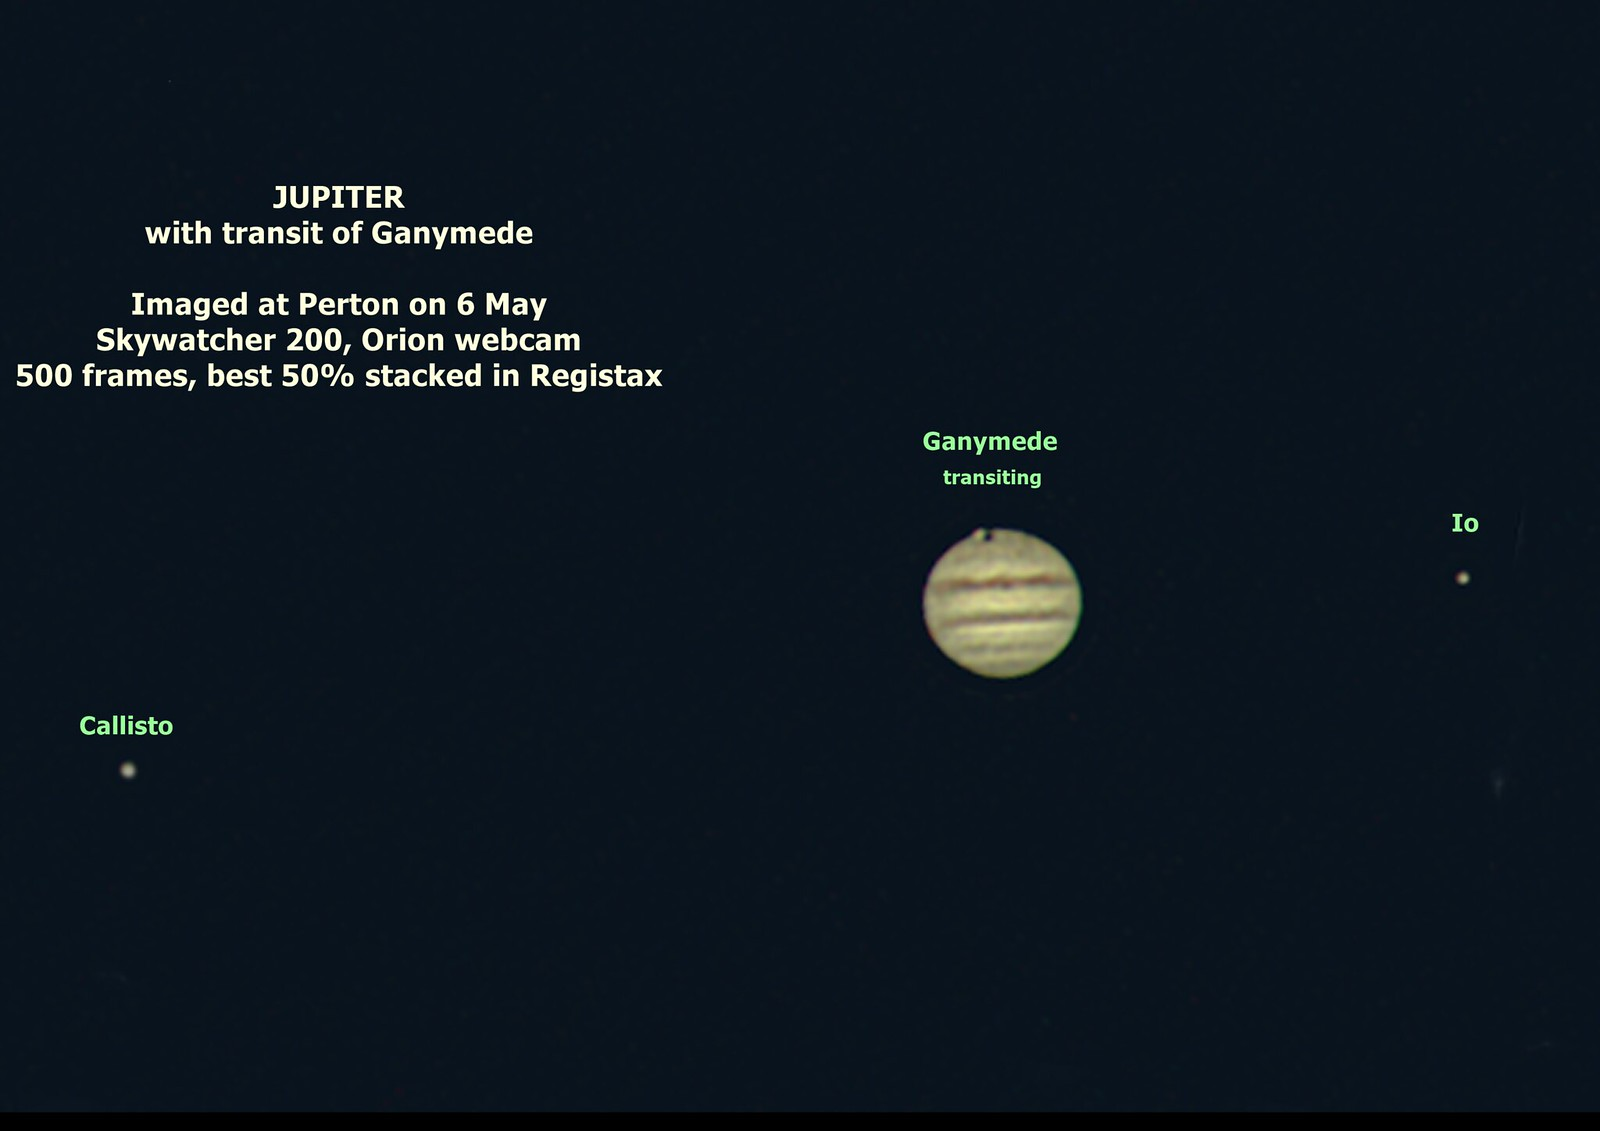 Jupiter and Ganymede transit